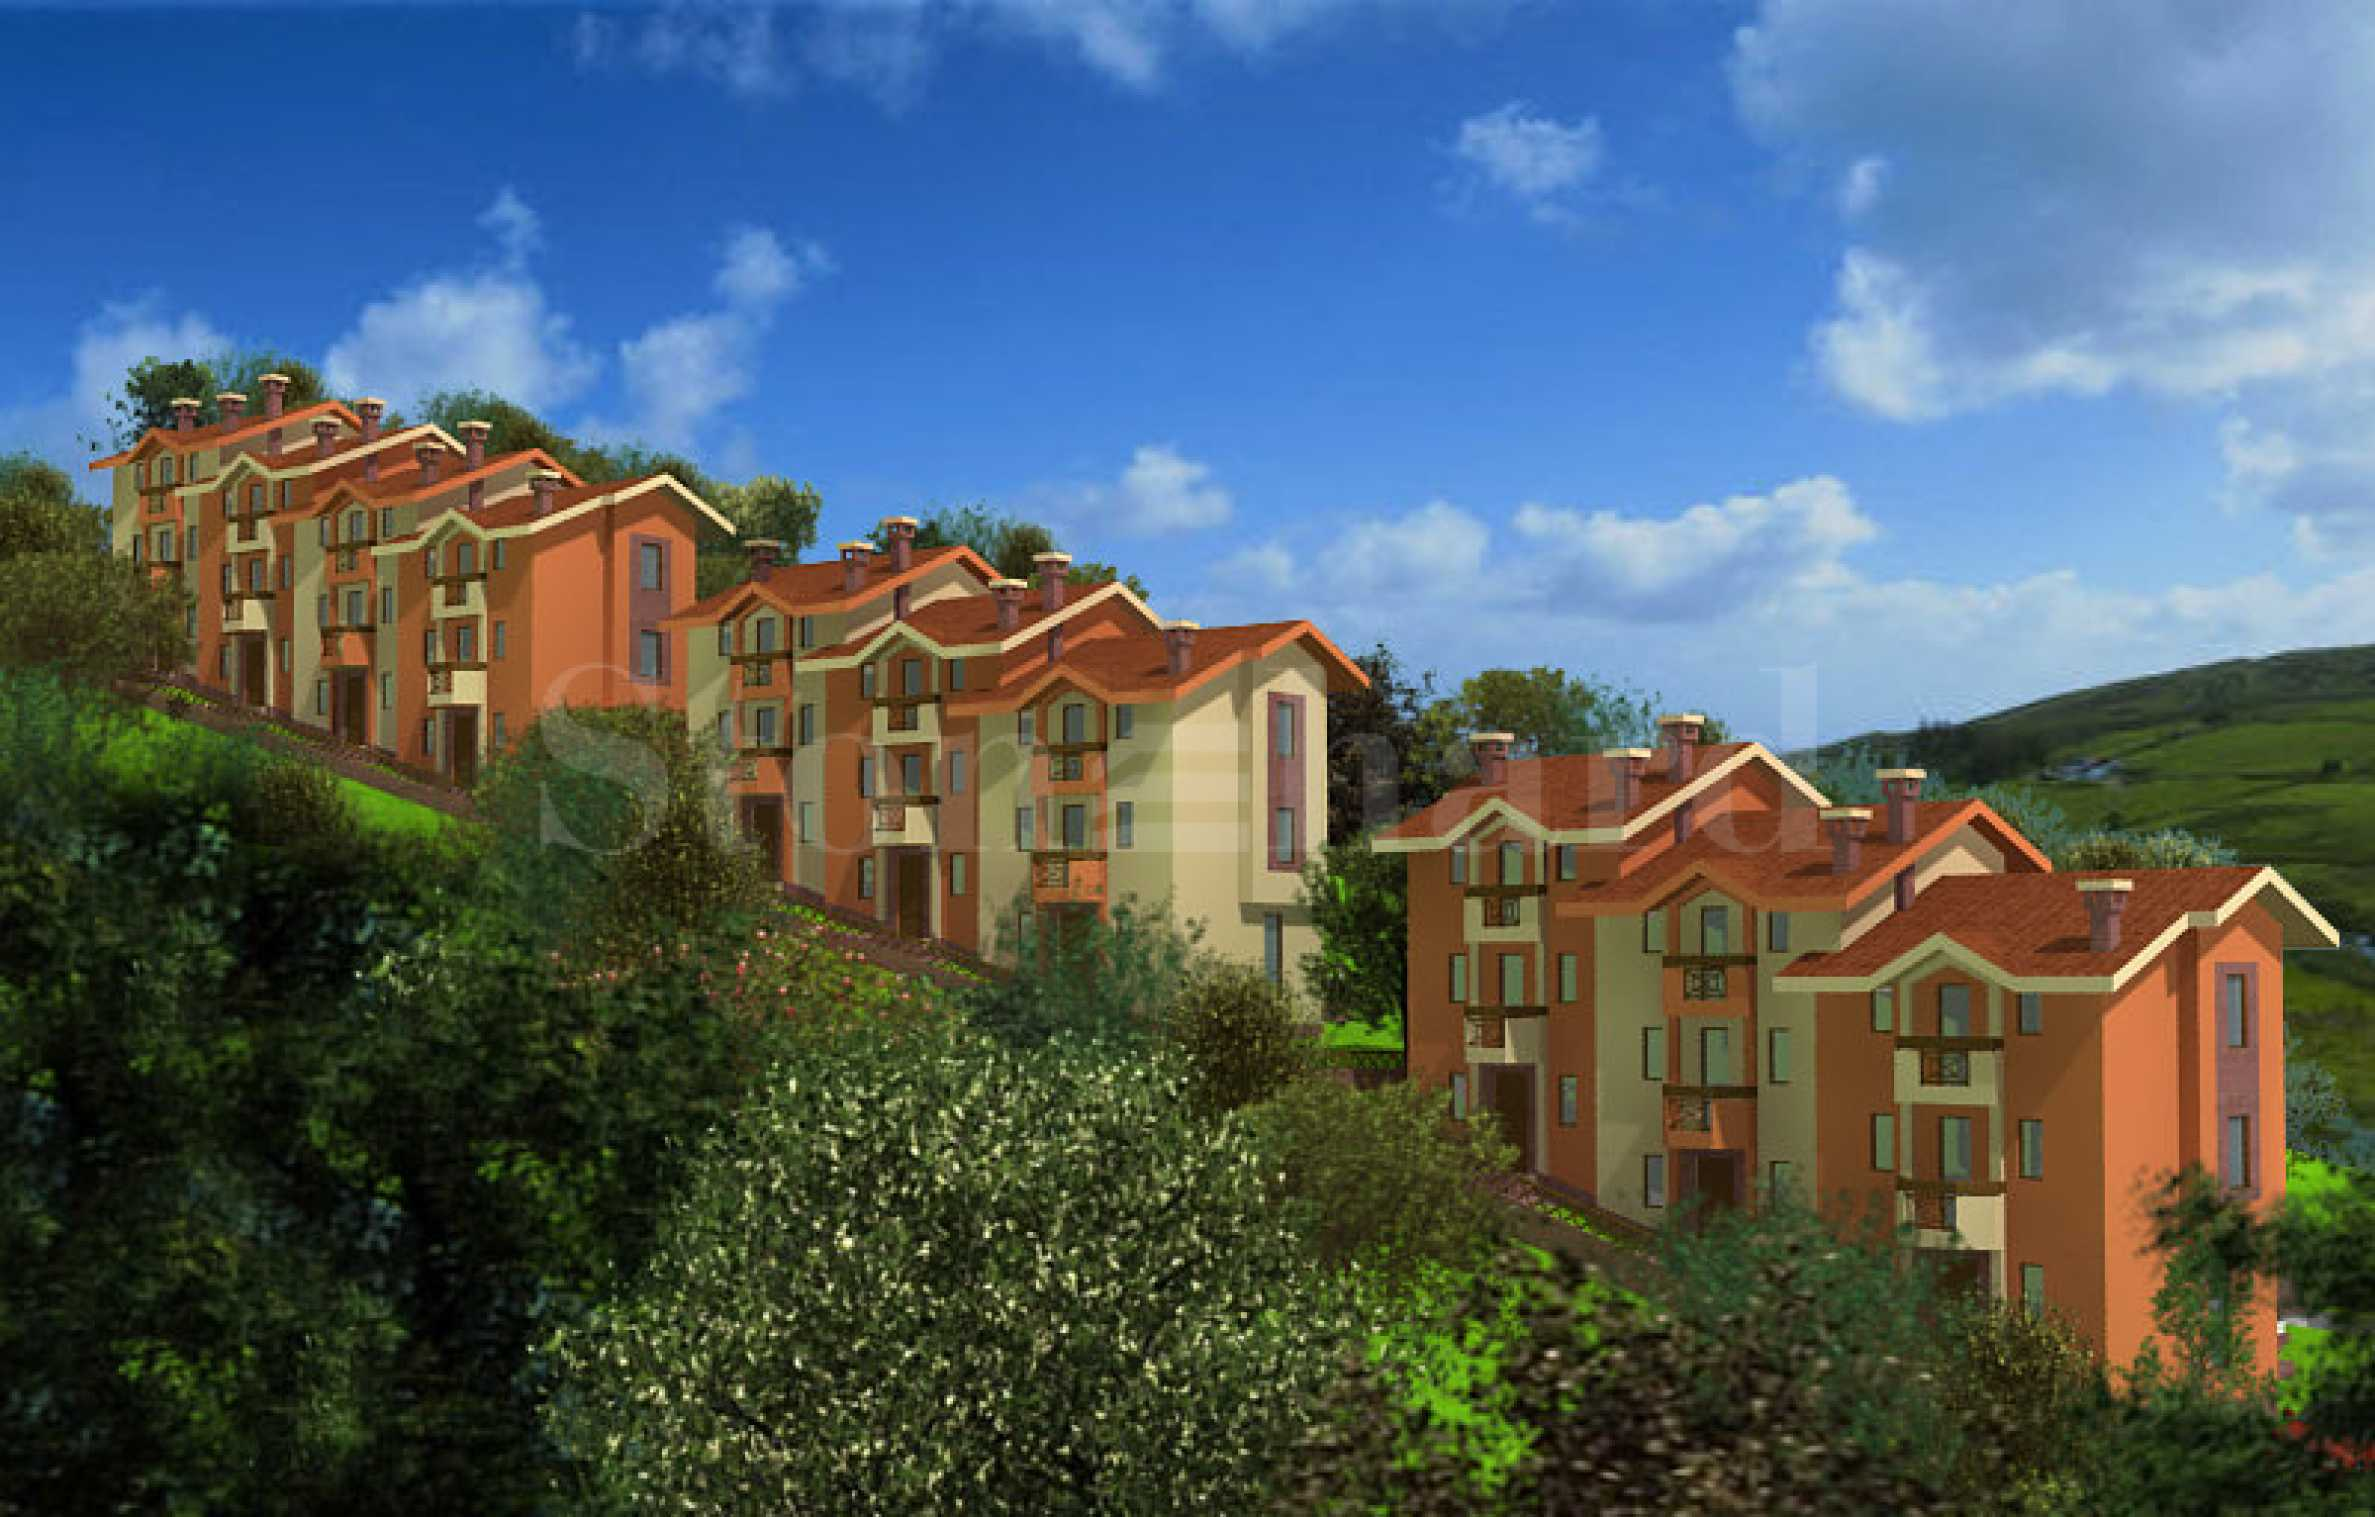 New townhouses at the foot of the mountain2 - Stonehard